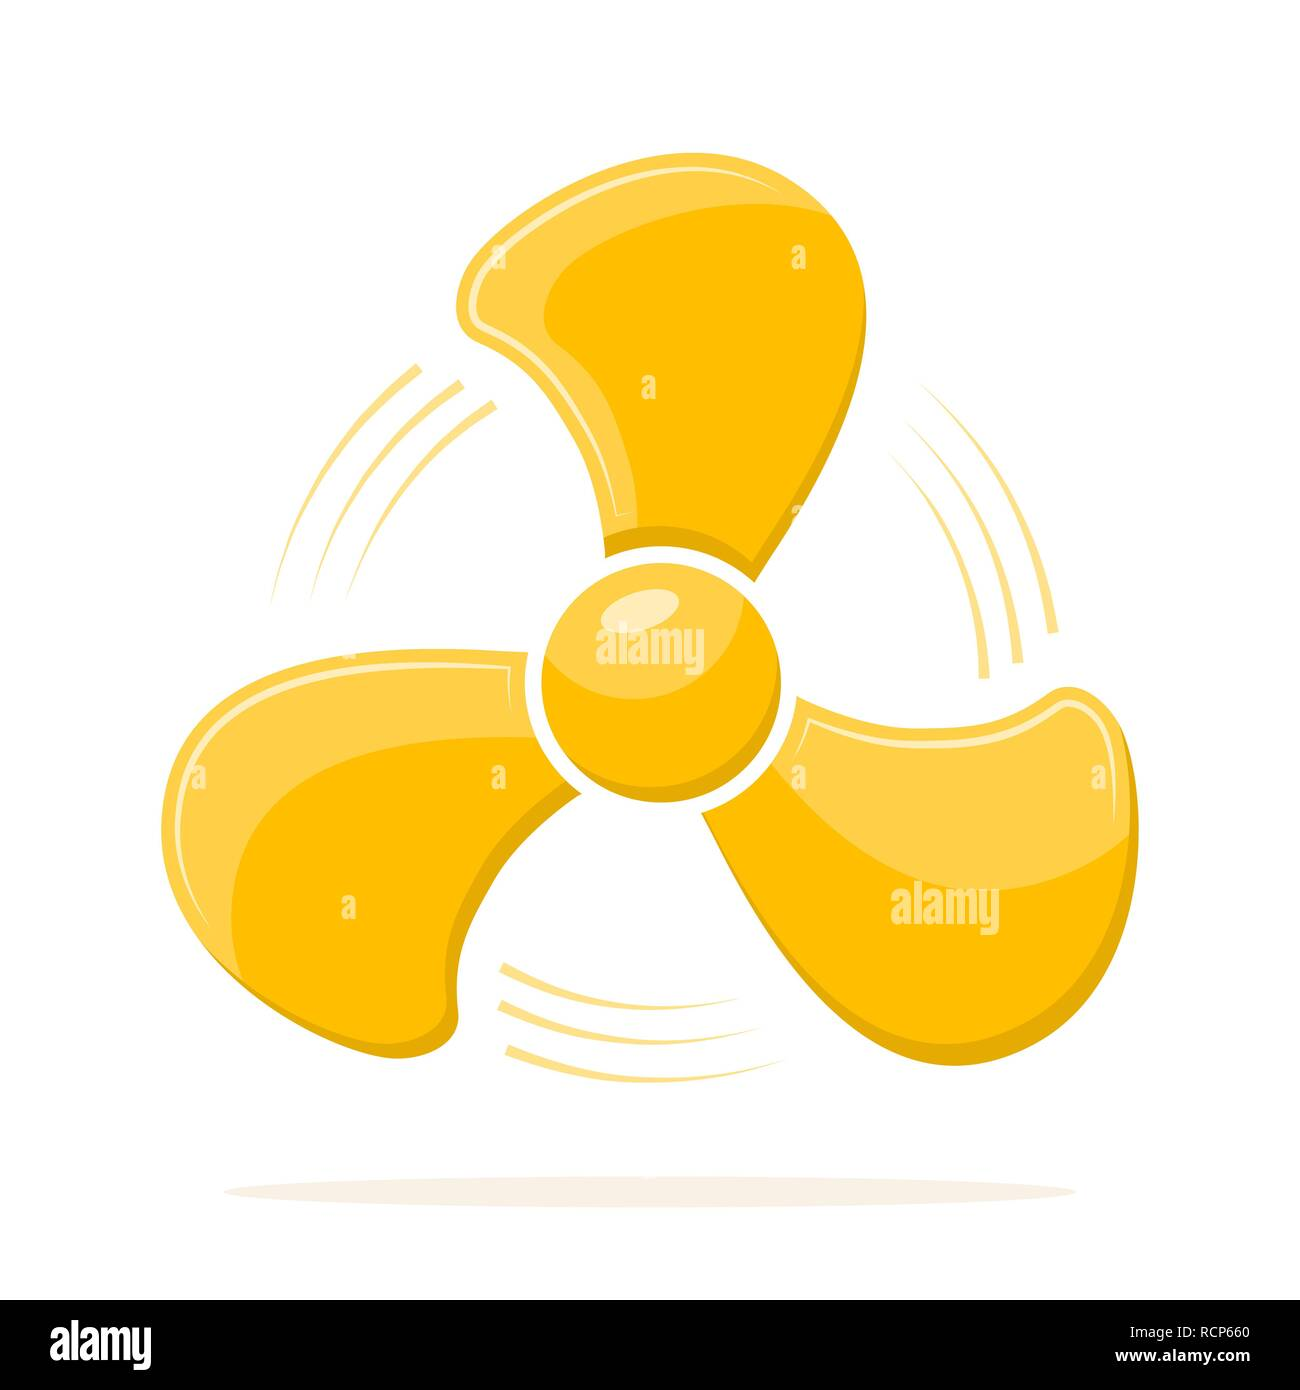 Yellow Fan Icon In Flat Design Vector Illustration Creative Graphic Design Logo Element Isolated On White Background Stock Vector Image Art Alamy,Small Yacht Interior Design Ideas